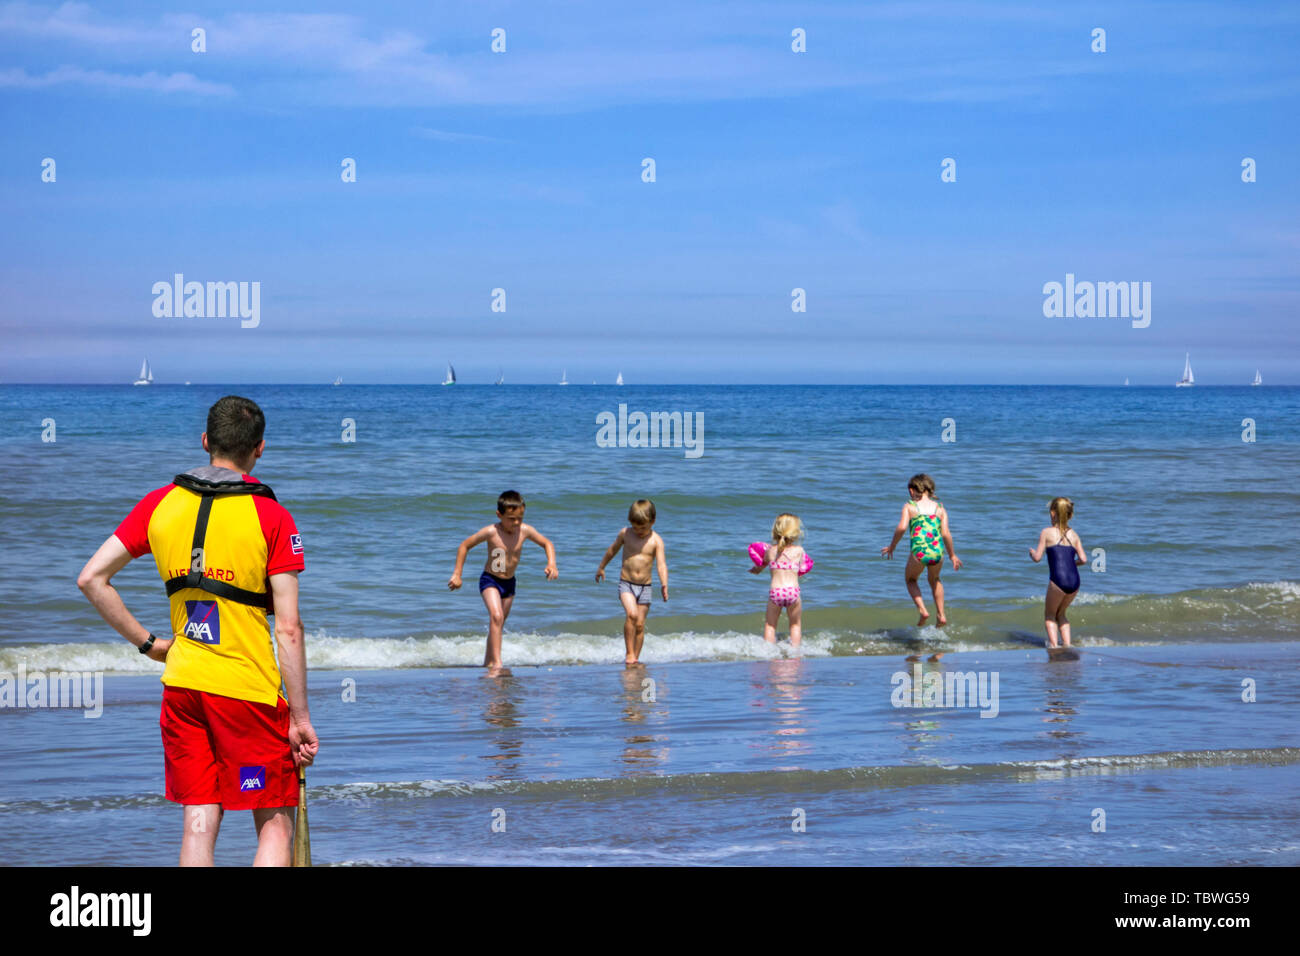 Belgian lifeguard watching over young children in bathing suits playing in the surf and jumping over the waves along the North Sea coast in summer - Stock Image